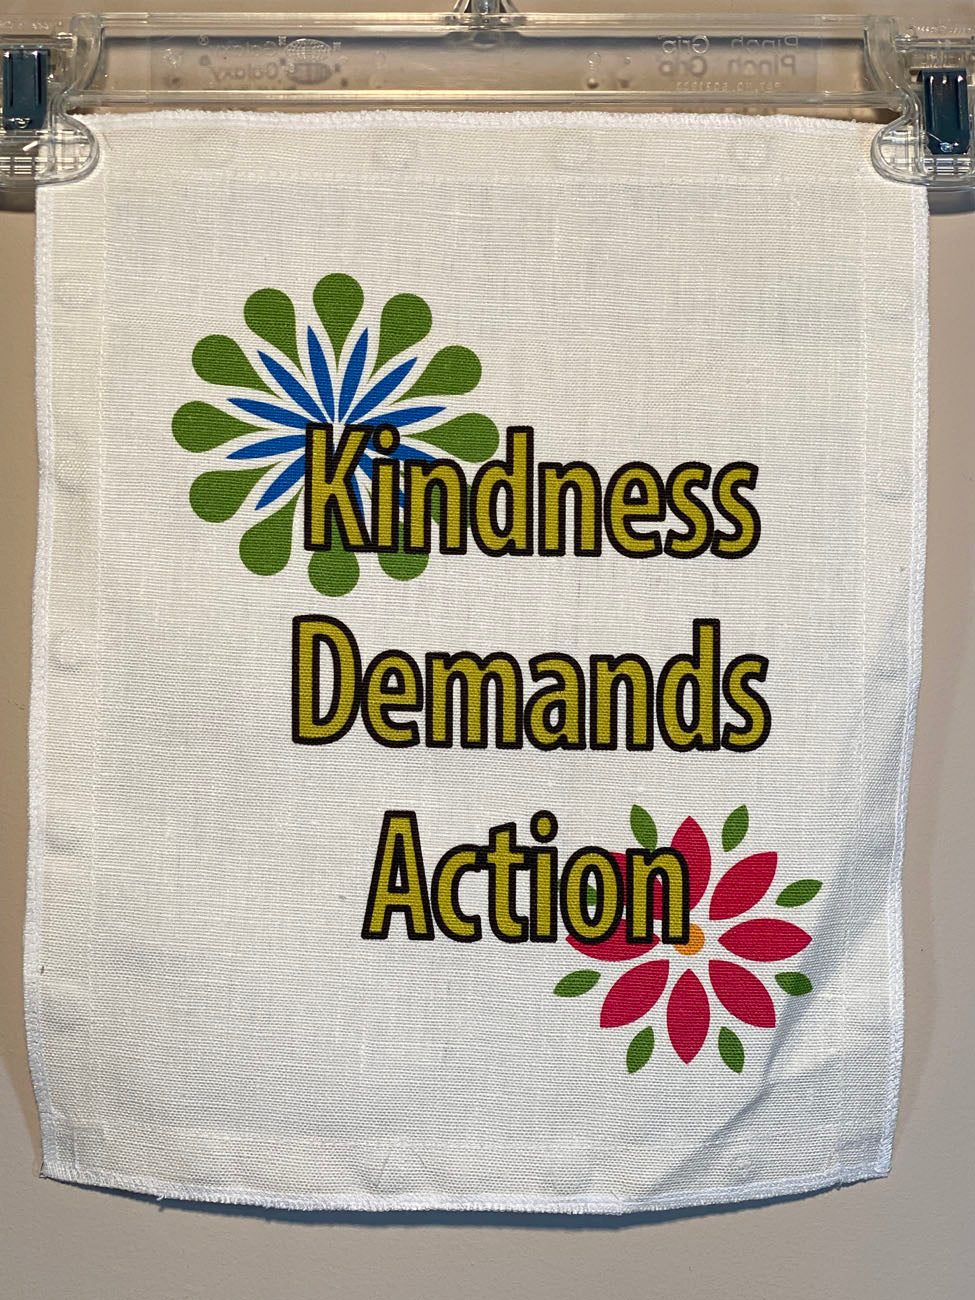 Kindness Demands Action